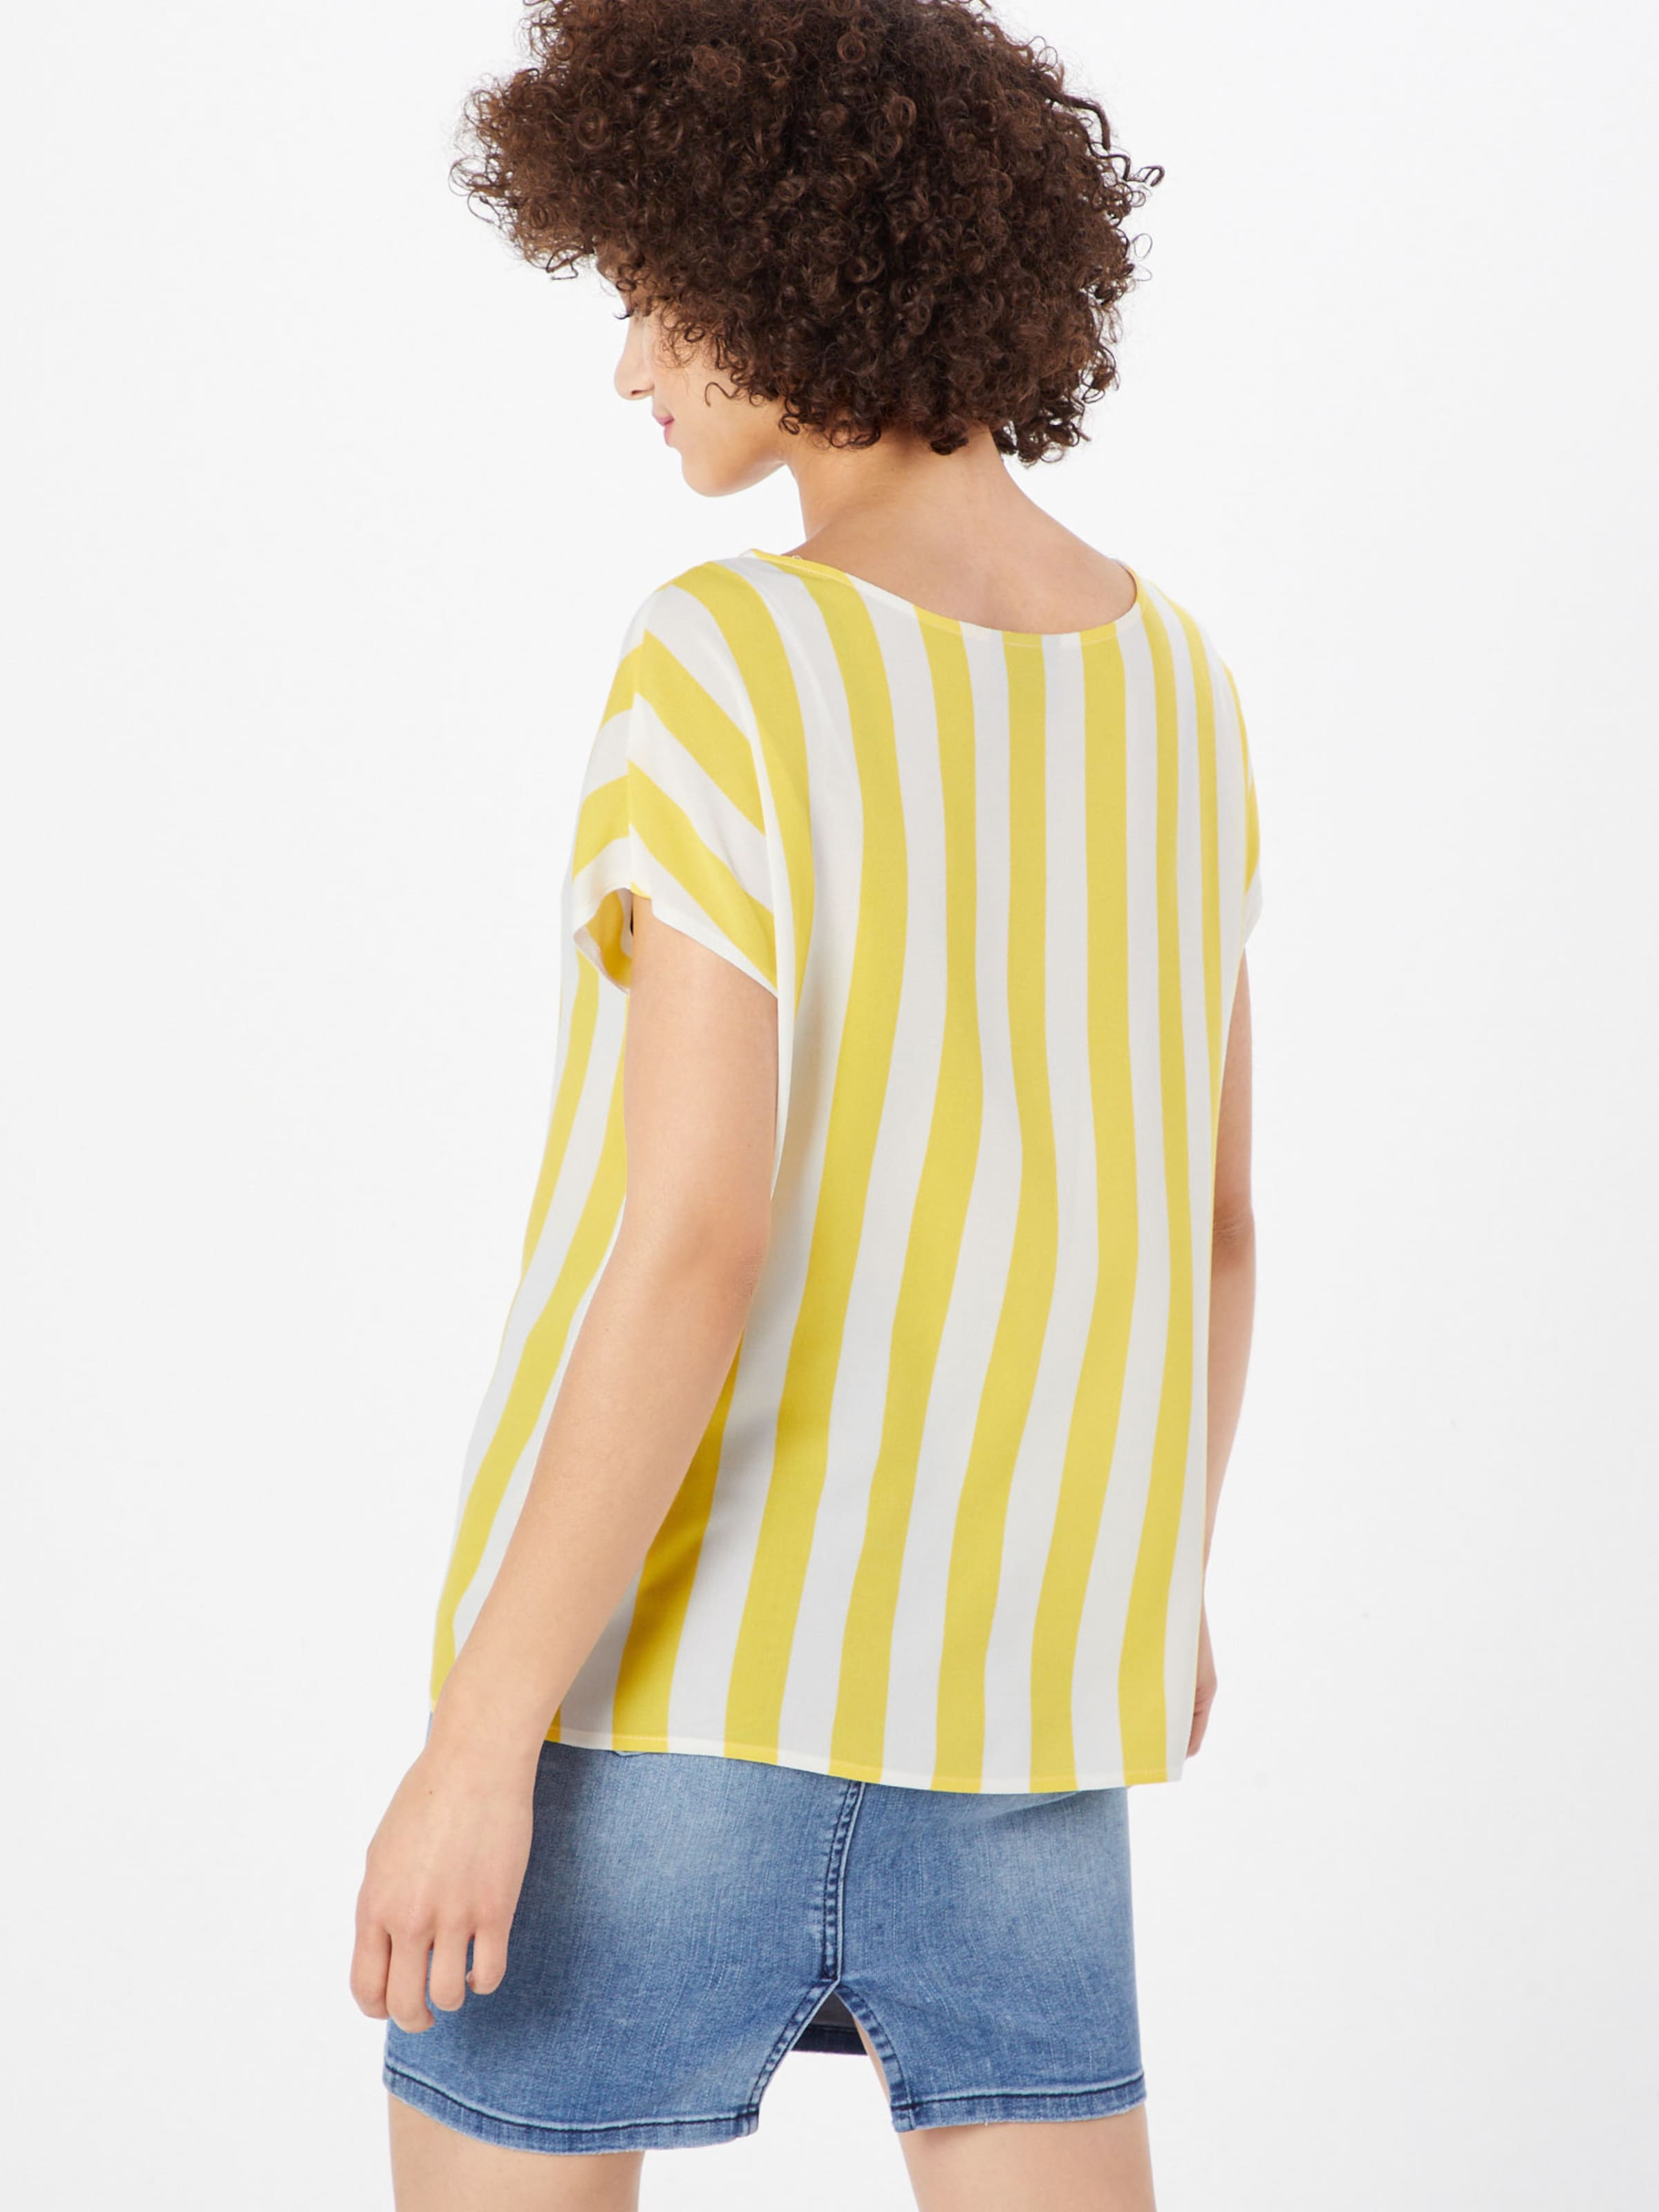 T JauneBlanc Object shirt 'bay' En 5RLAjq43cS